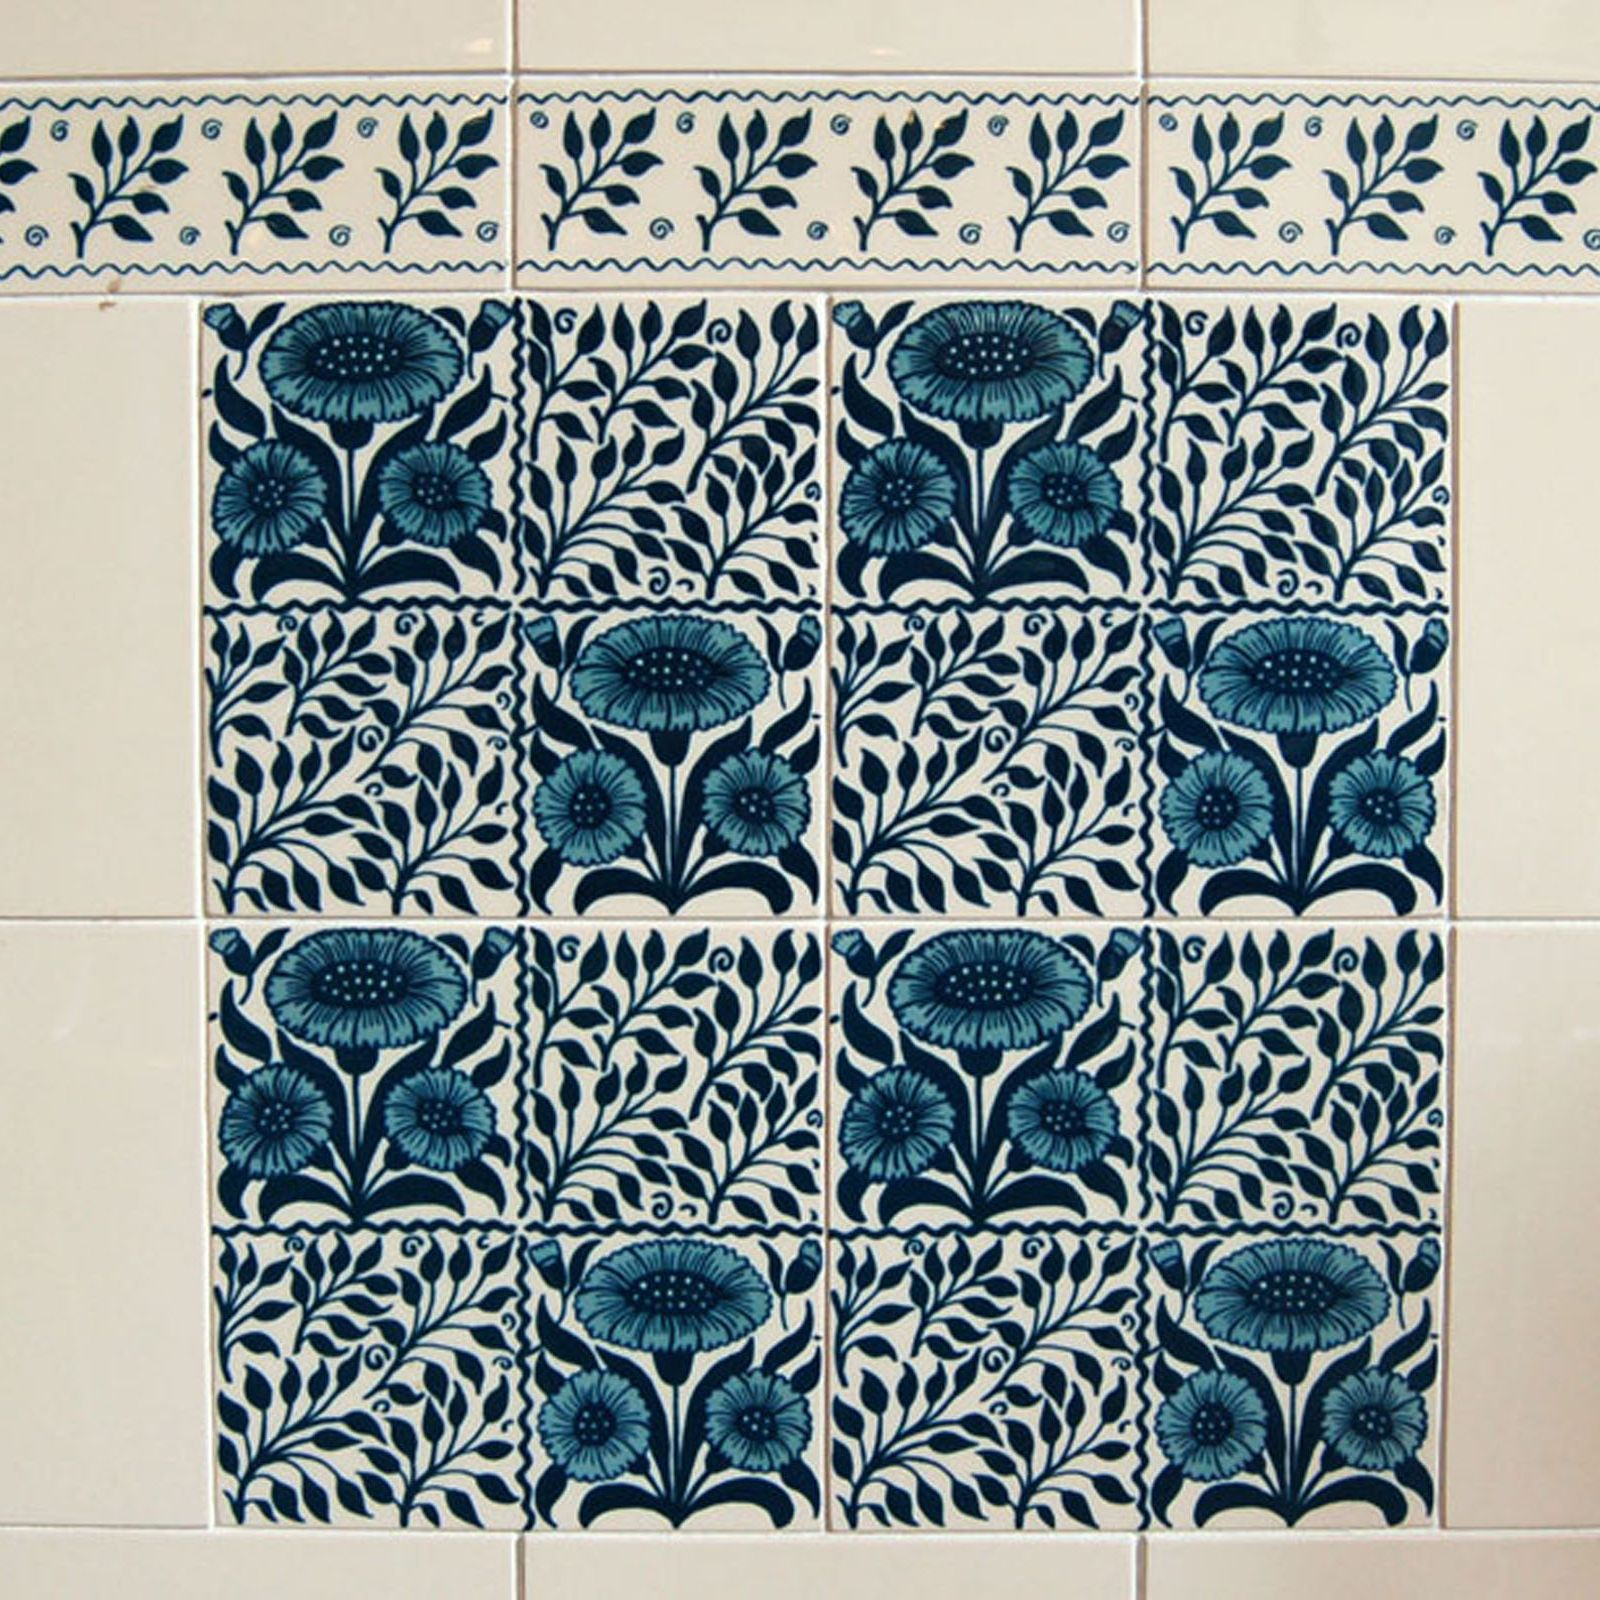 Decorative Wall Tiles For Outside : Victorian fenton blue decorative tiles mm